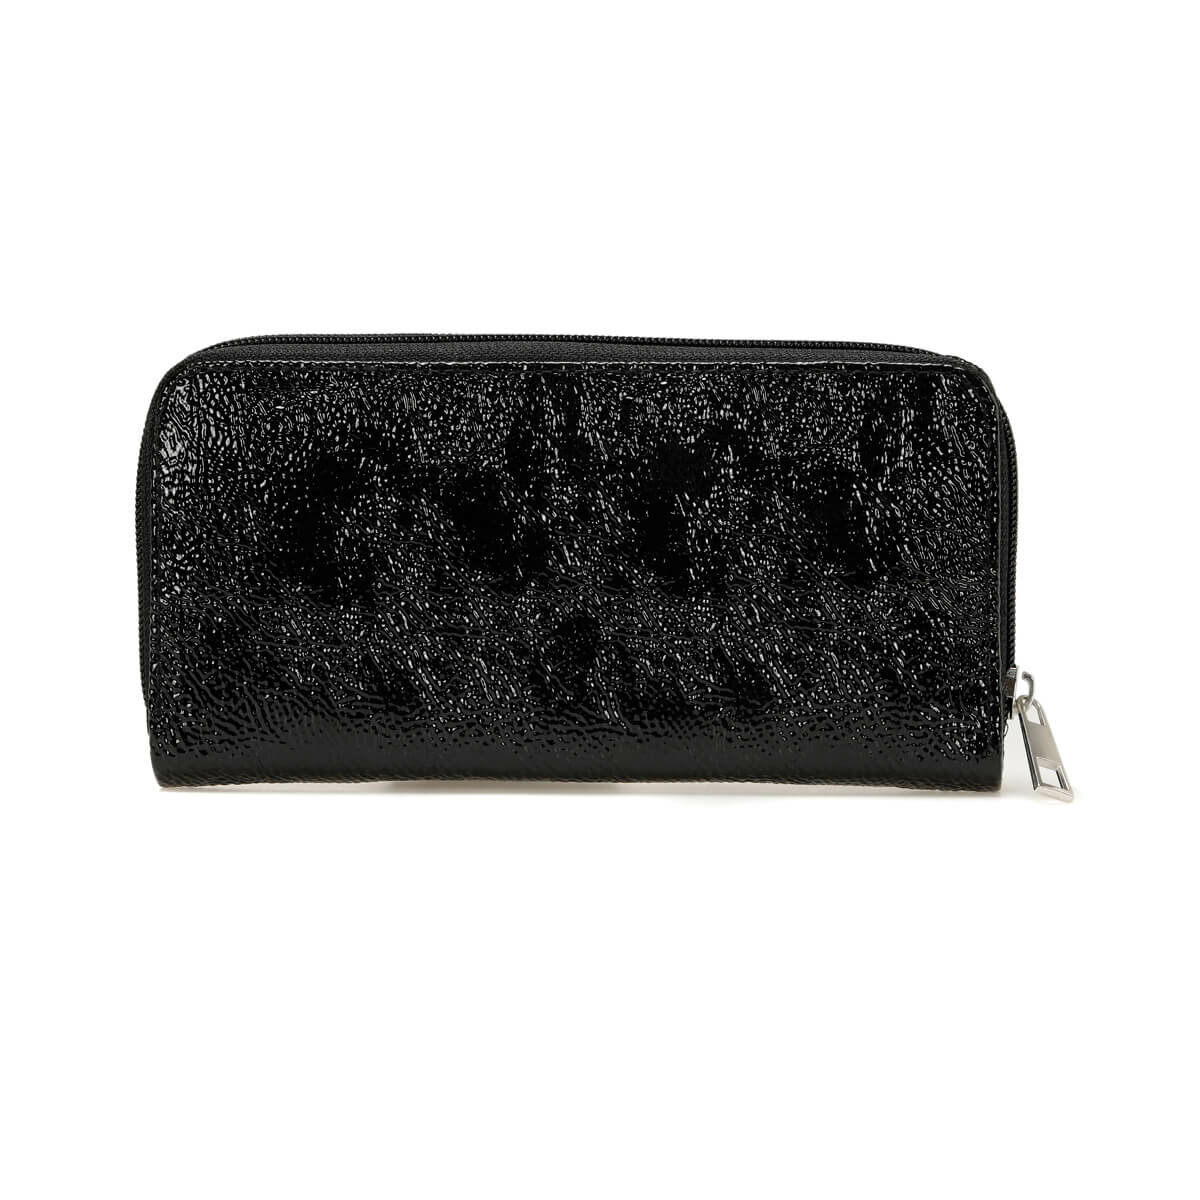 FLO MKNY3623 Black Women 'S Wallet Polaris